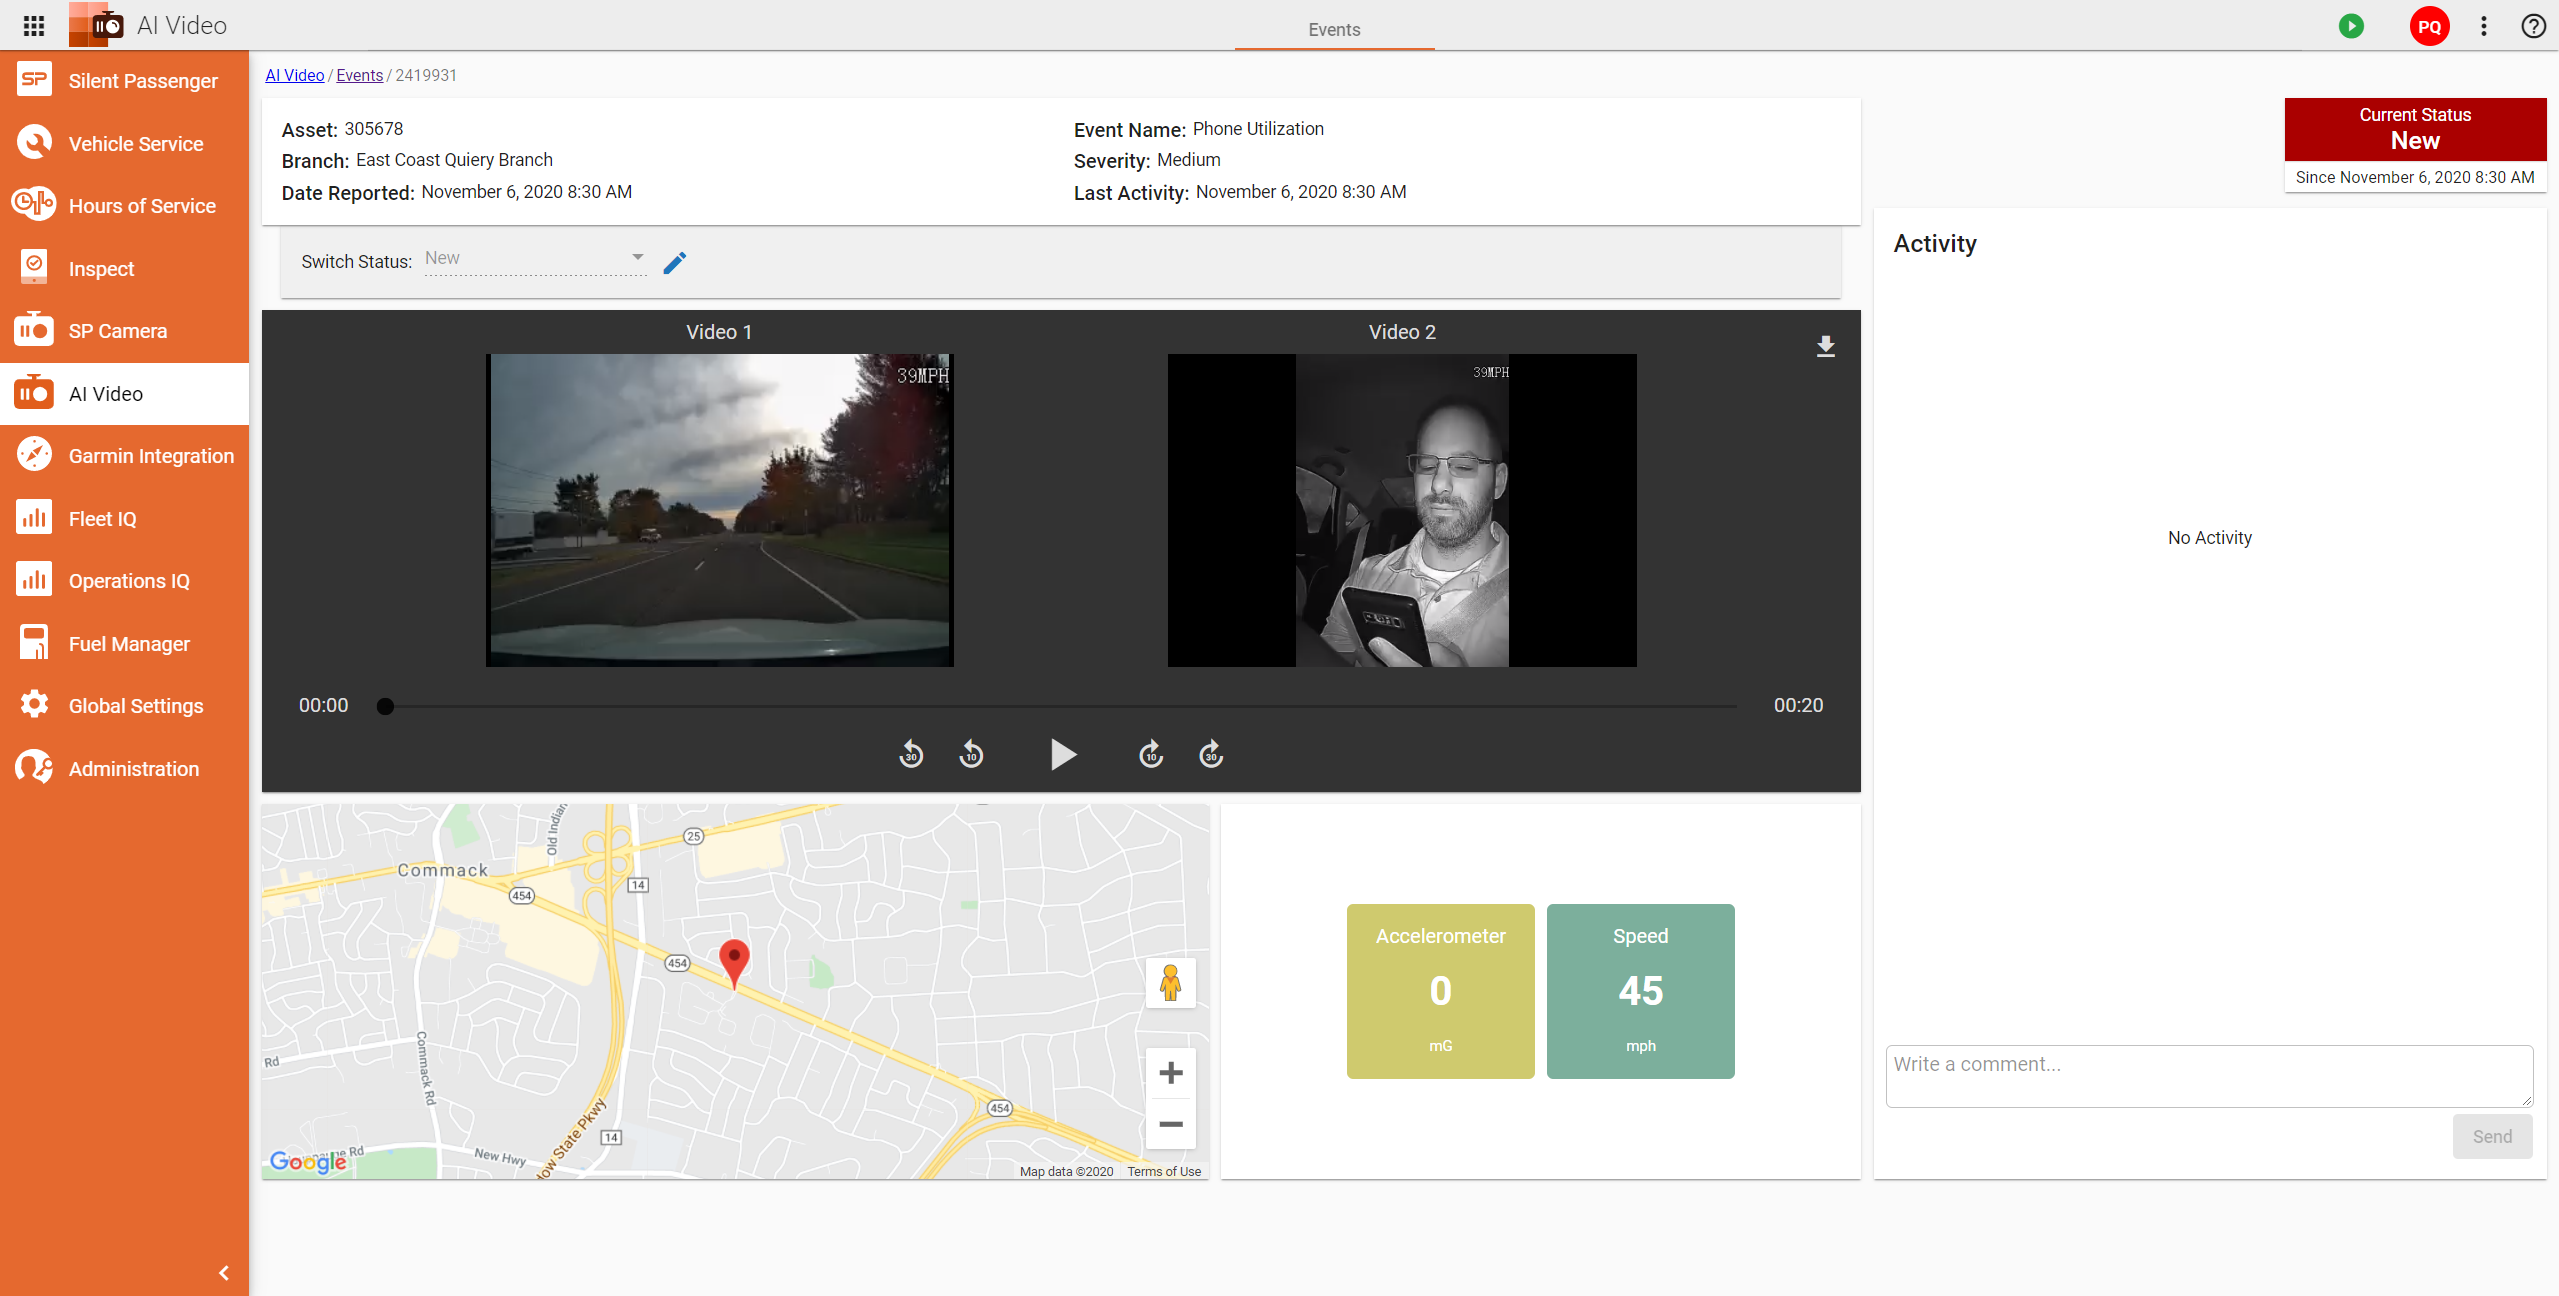 AI Video Dash Cams distracted driver detection